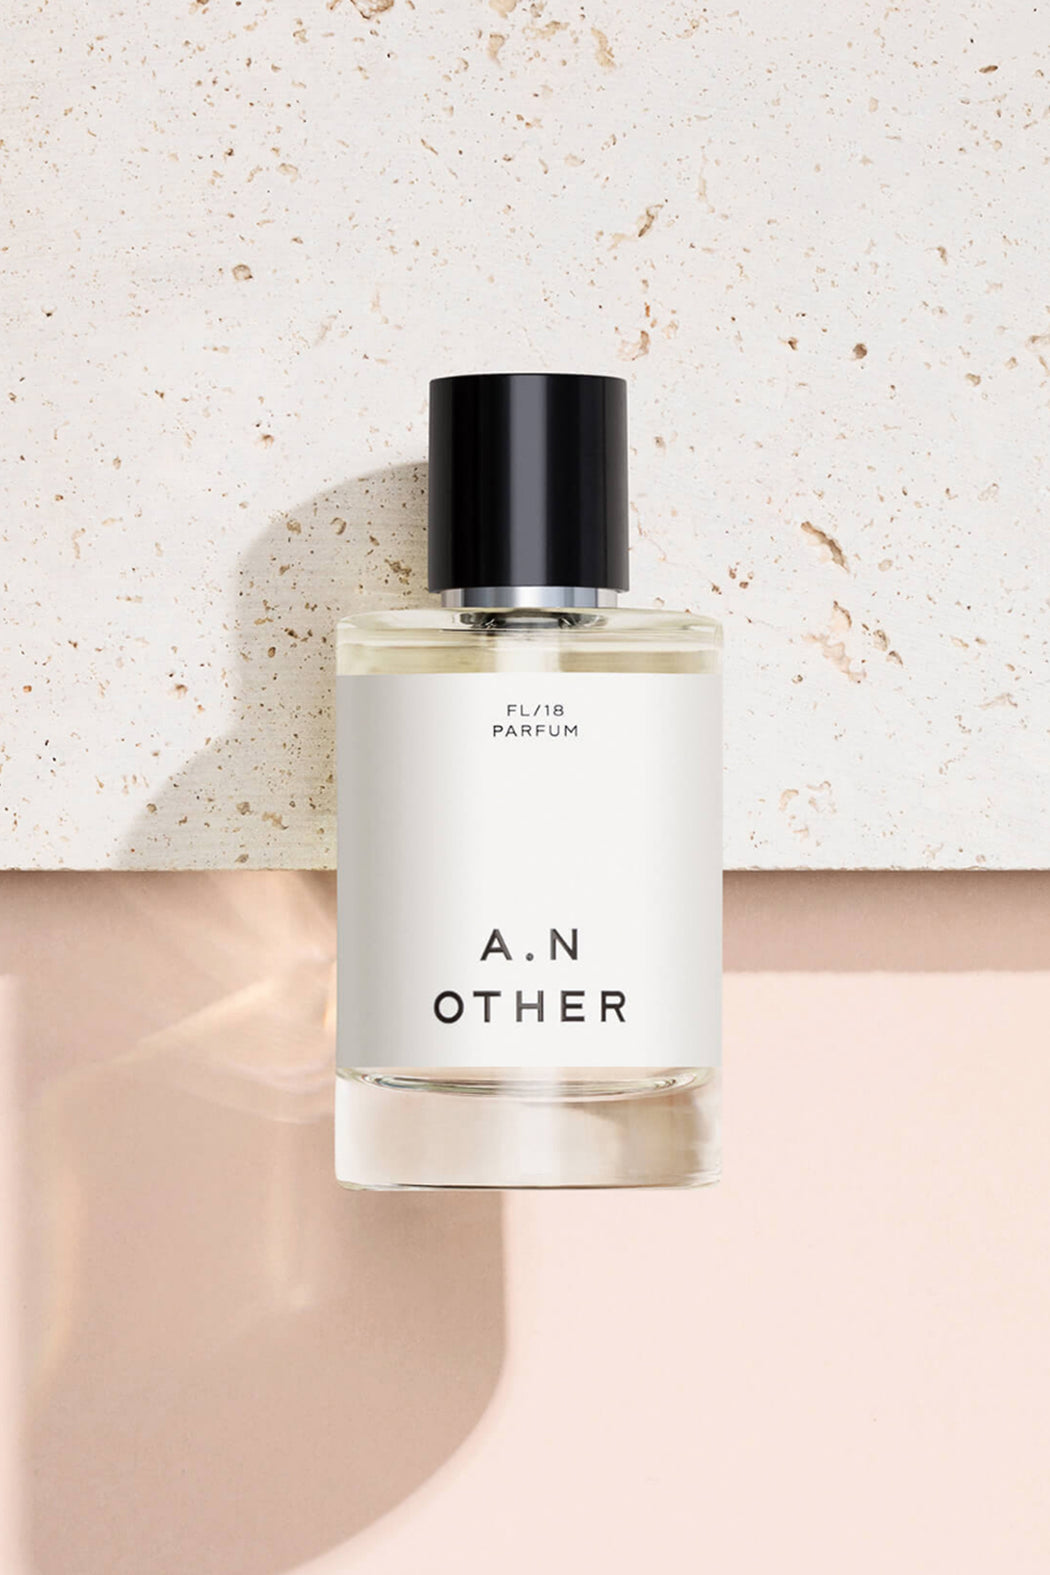 A.N. OTHER - FL/18